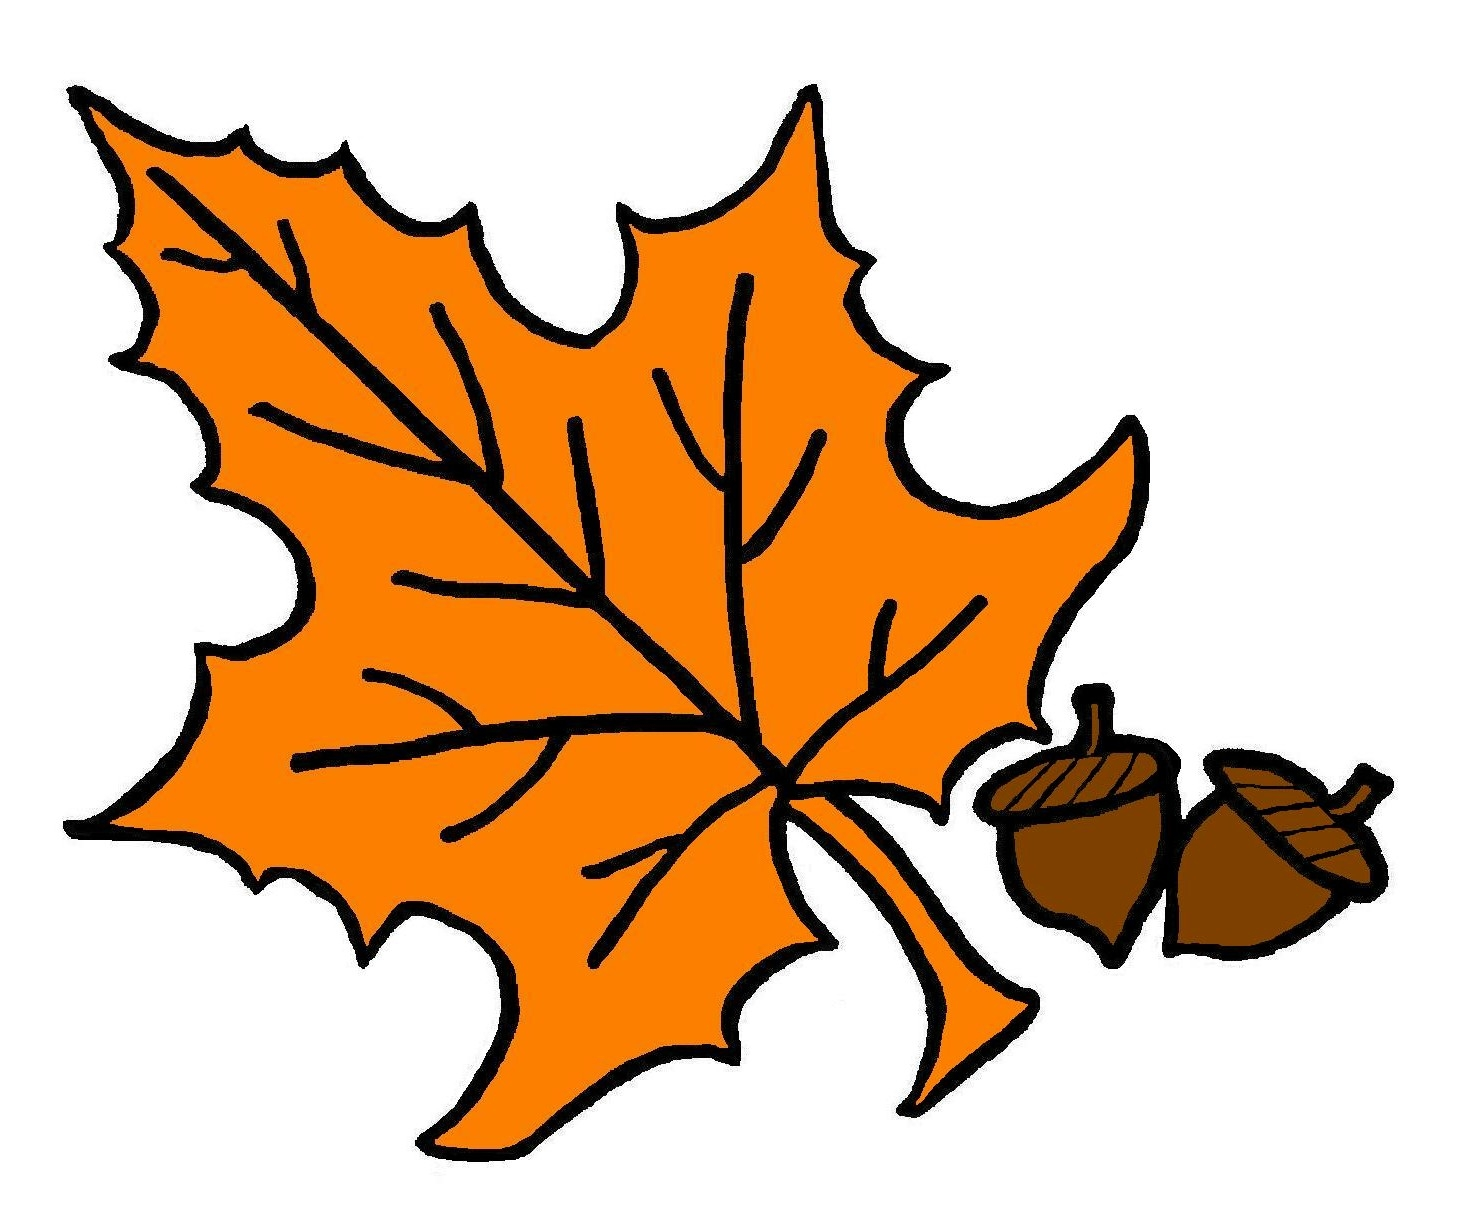 Free clipart of fall leaves.